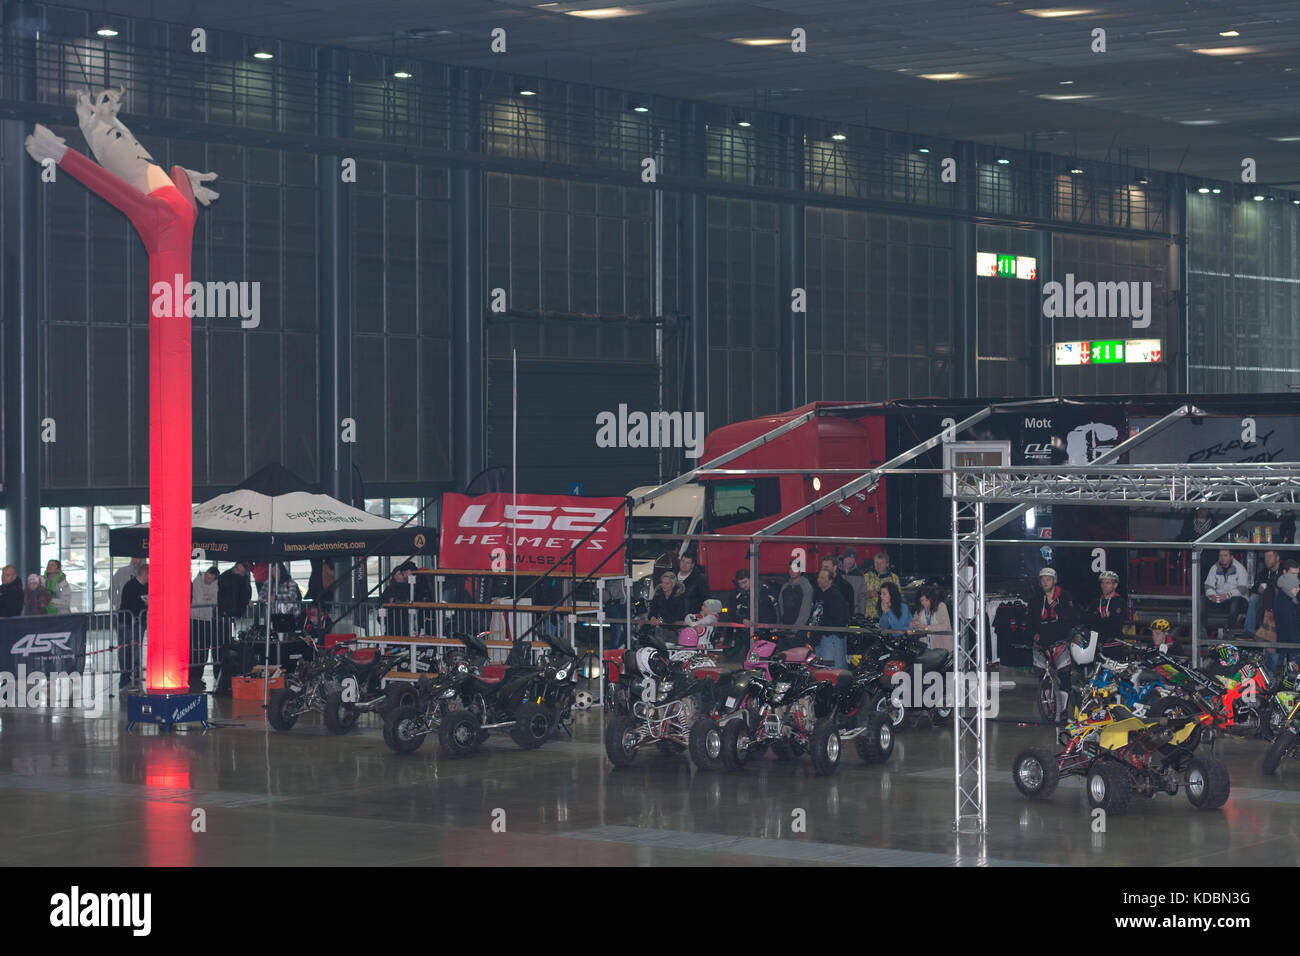 BRNO, CZECH REPUBLIC-MARCH 4,2016: Pavilion in Brno Exhibitions Centre, place of stuntman show during International Stock Photo